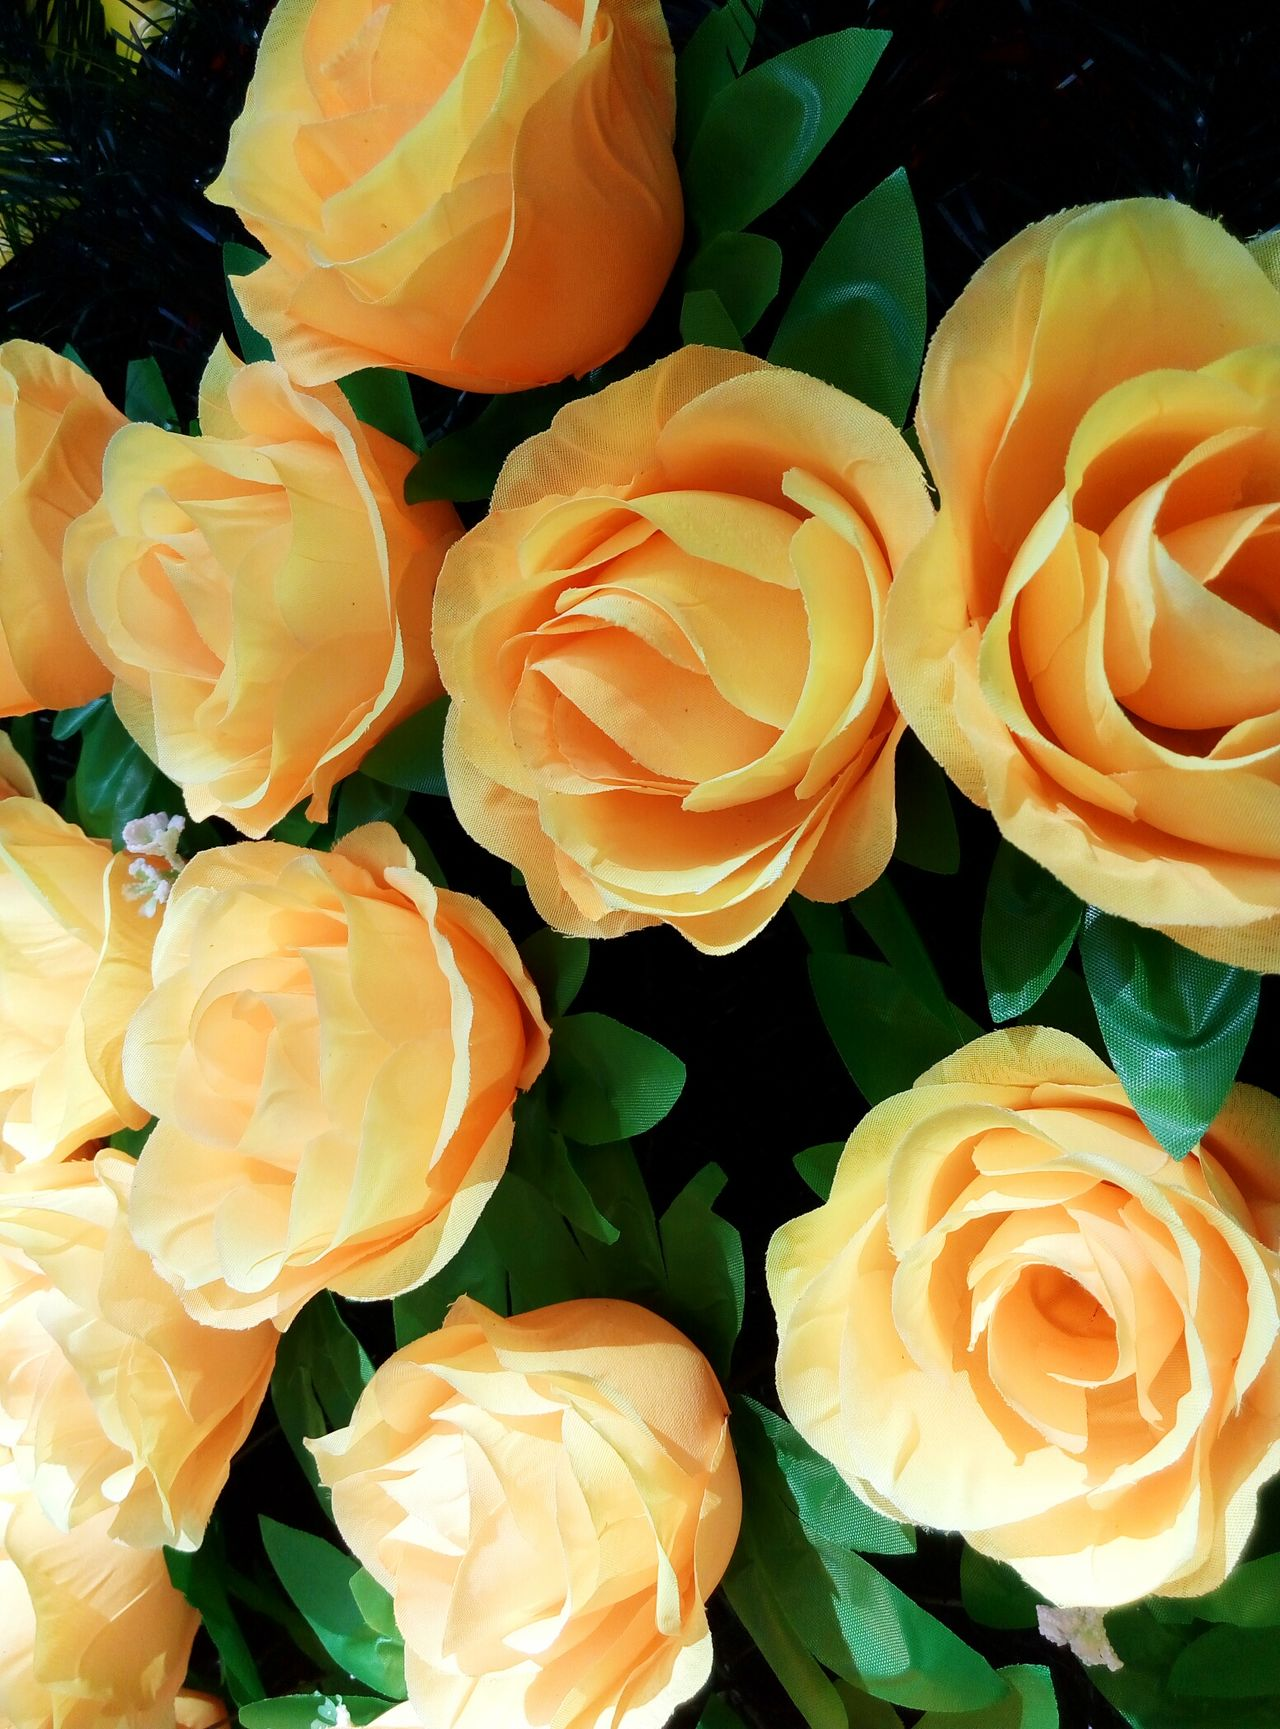 Roses Flowers Wellow Lovely Relaxing Nature Summer Inlove Beauty Beauty In Nature